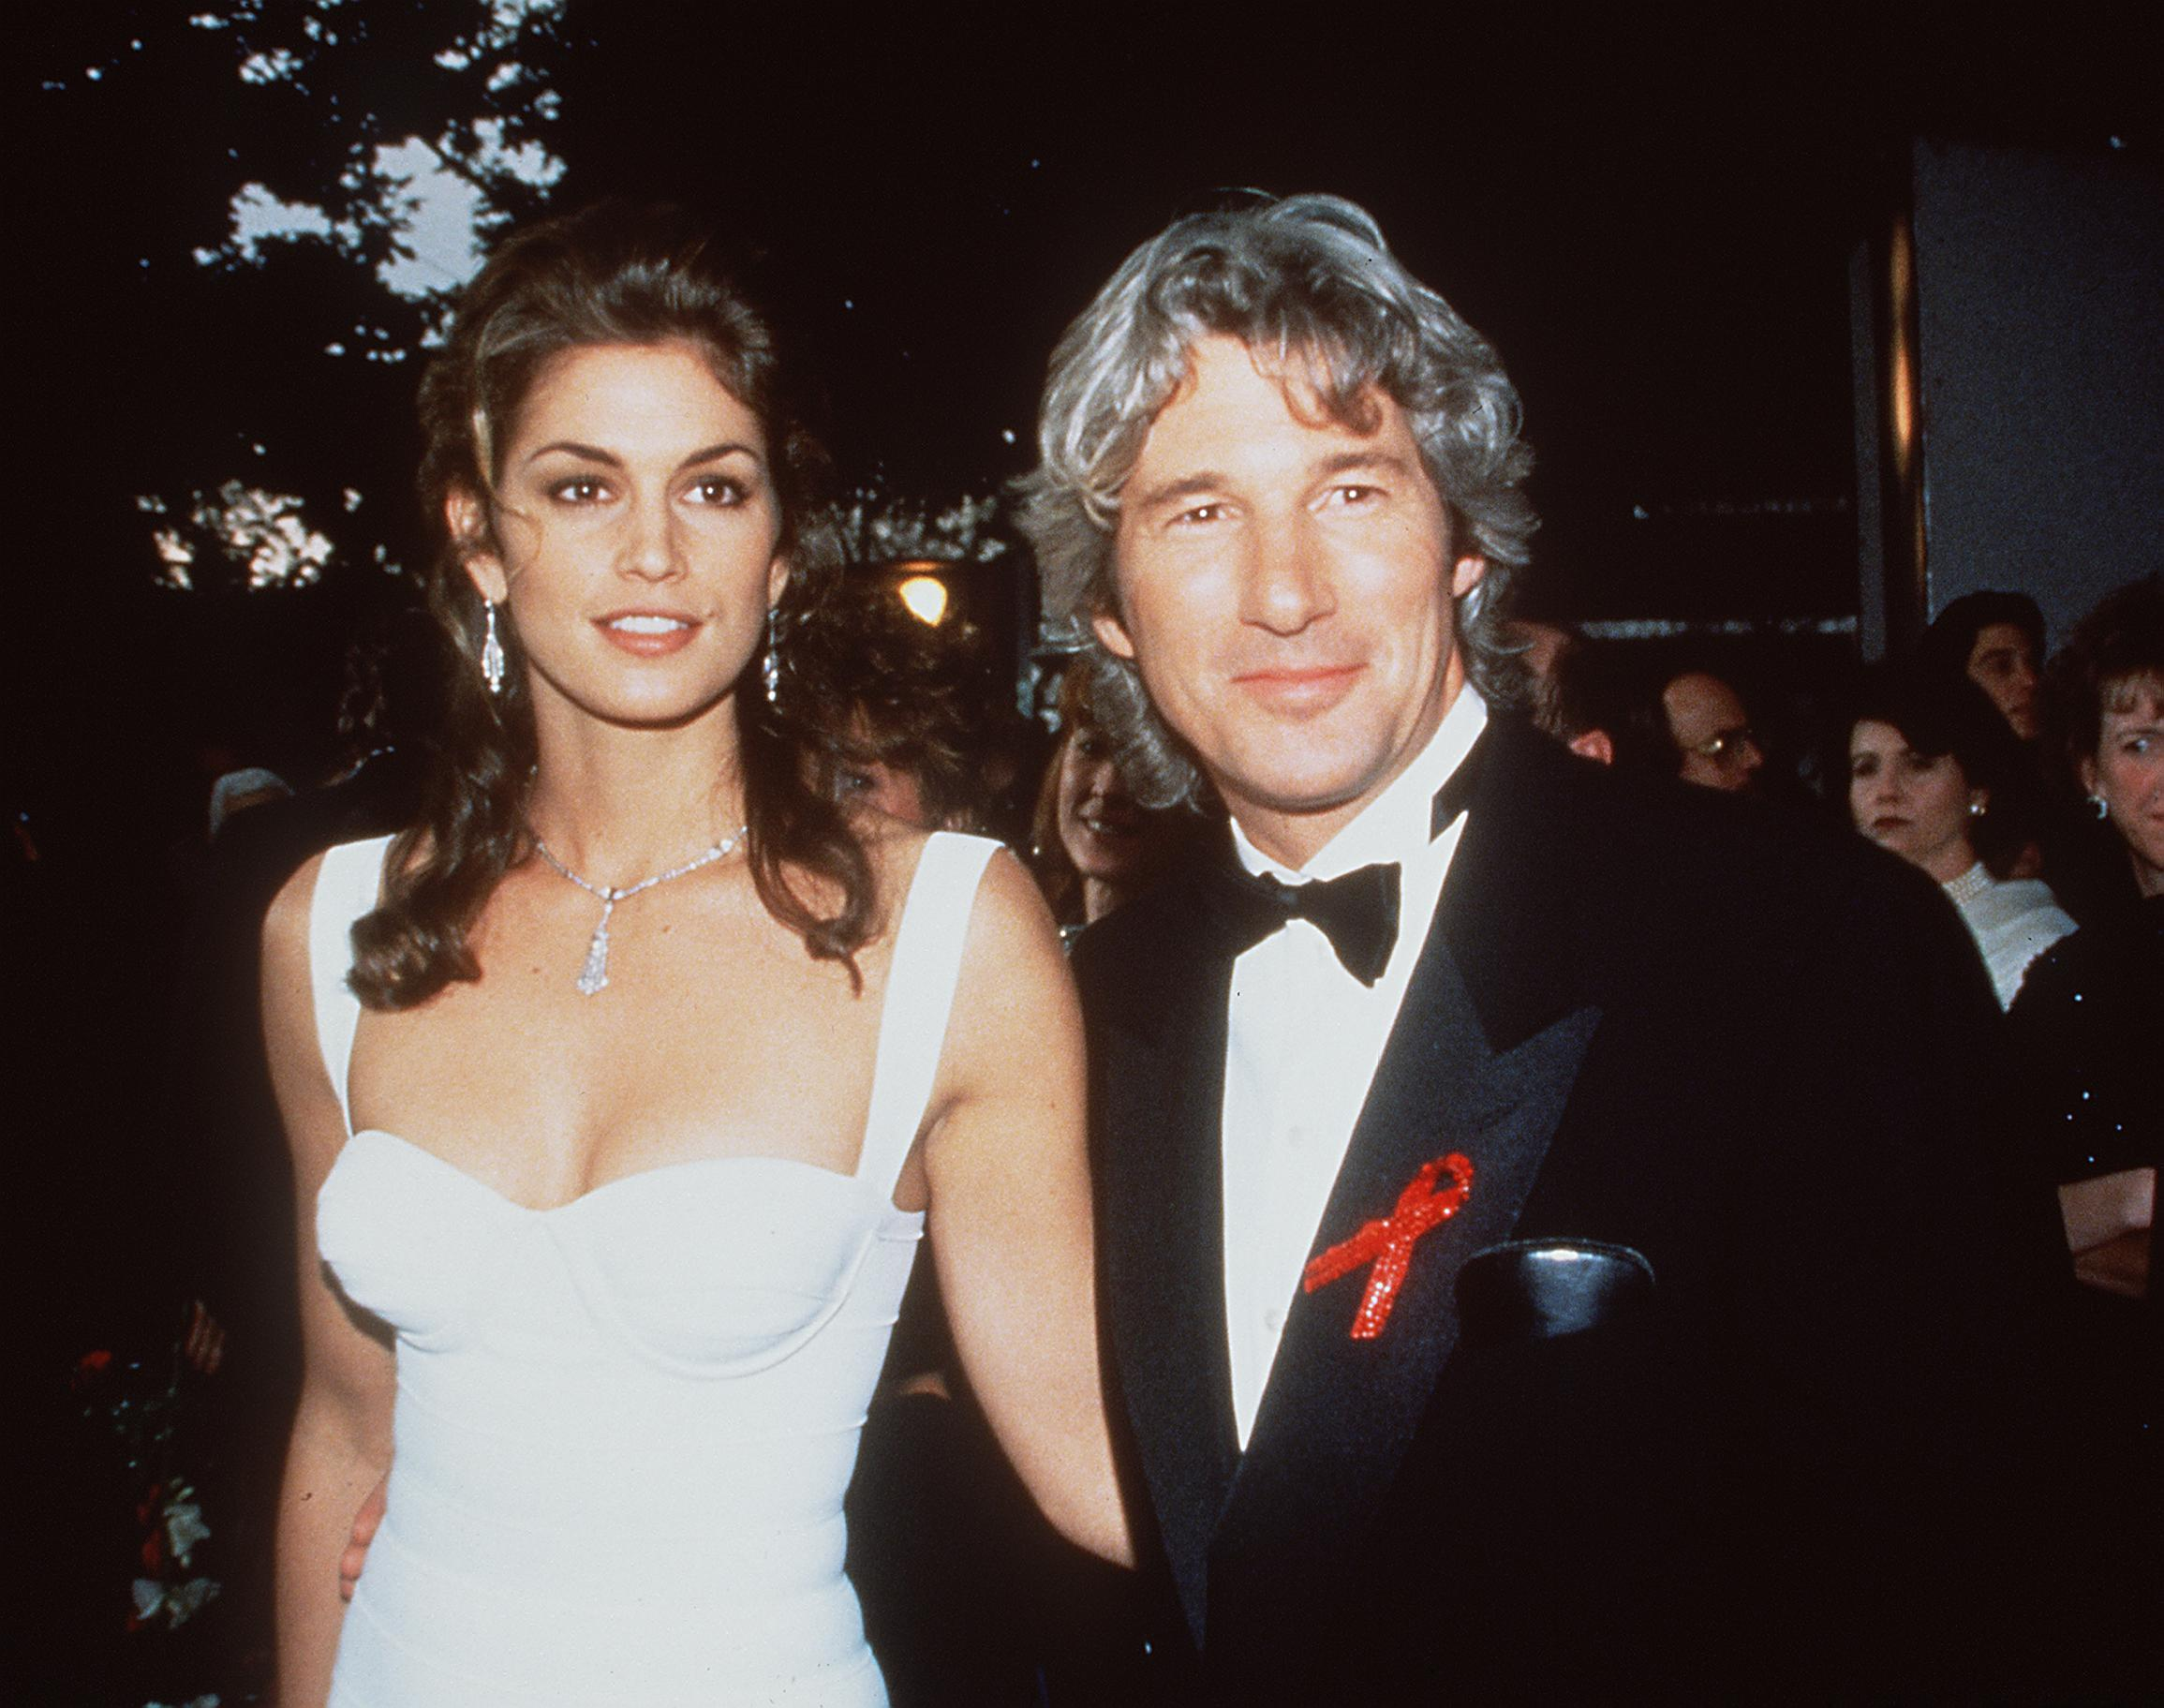 Cindy Crawford with Richard Gere Image Source: Getty Images.